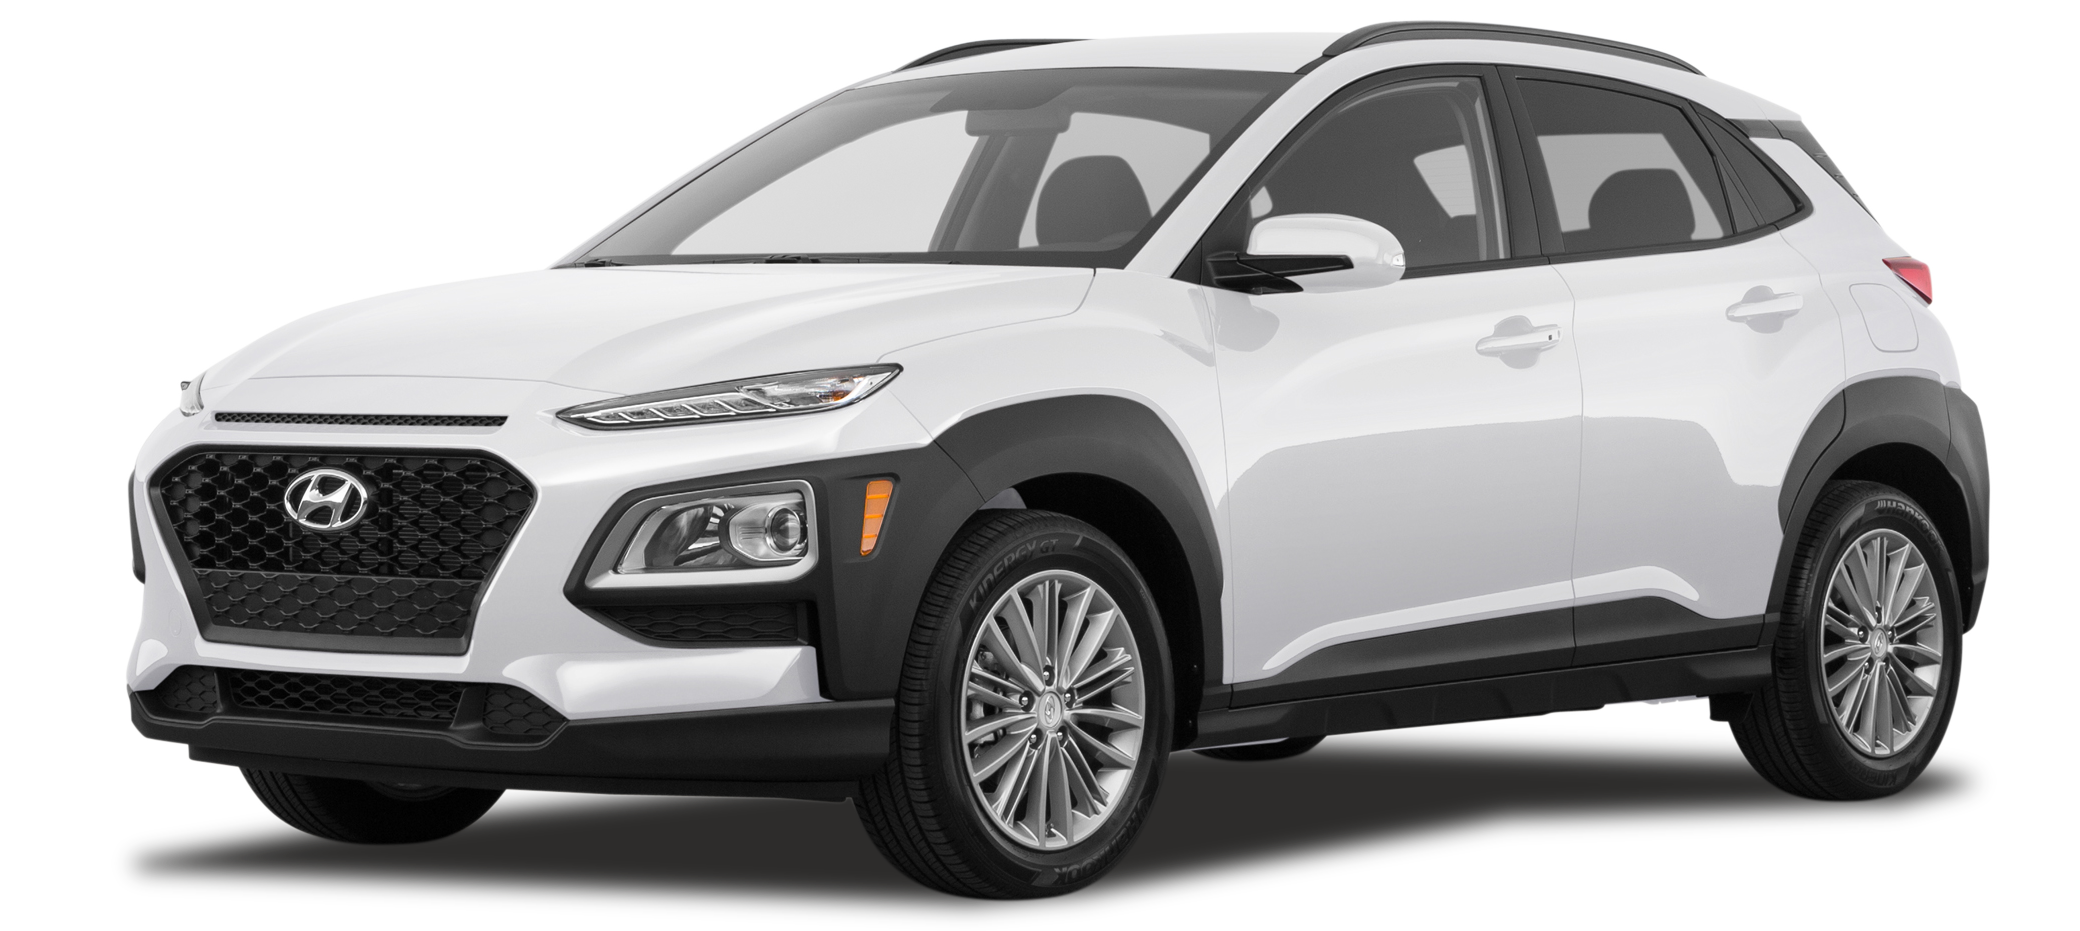 2018 hyundai kona incentives specials offers in monroe nc. Black Bedroom Furniture Sets. Home Design Ideas